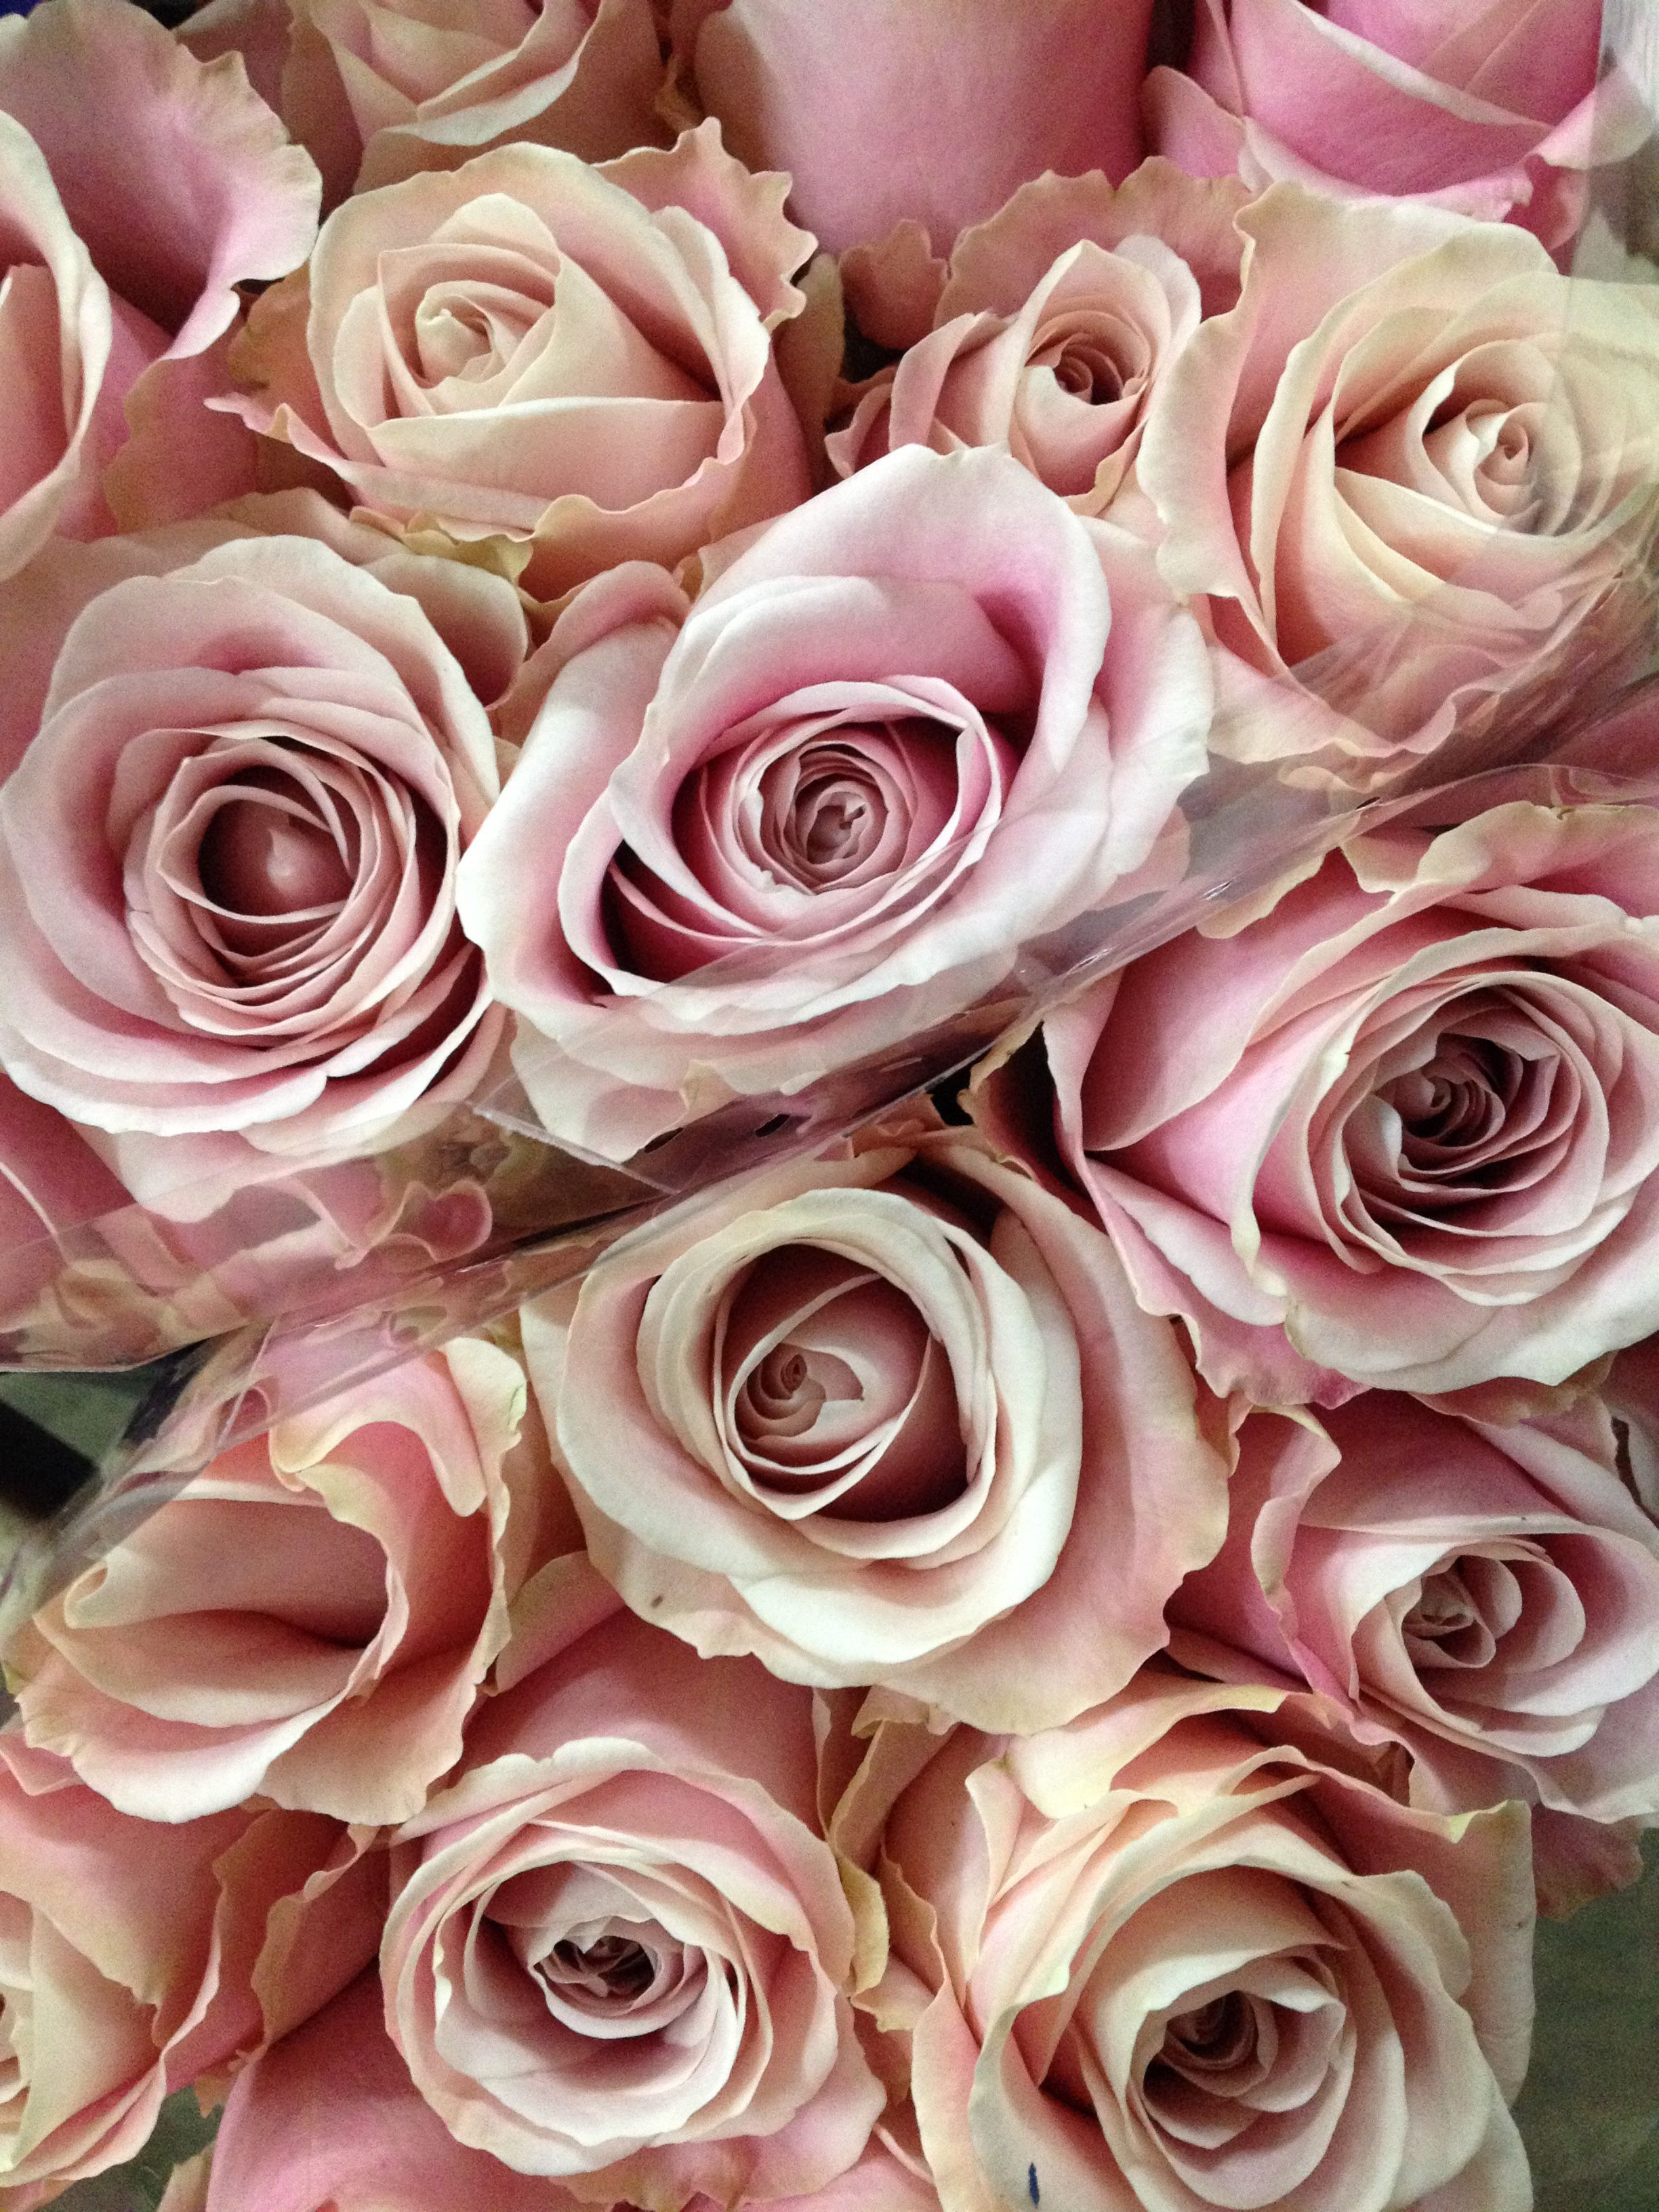 Sold in bunches of 20 stems from the Flowermonger the wholesale floral home delivery service